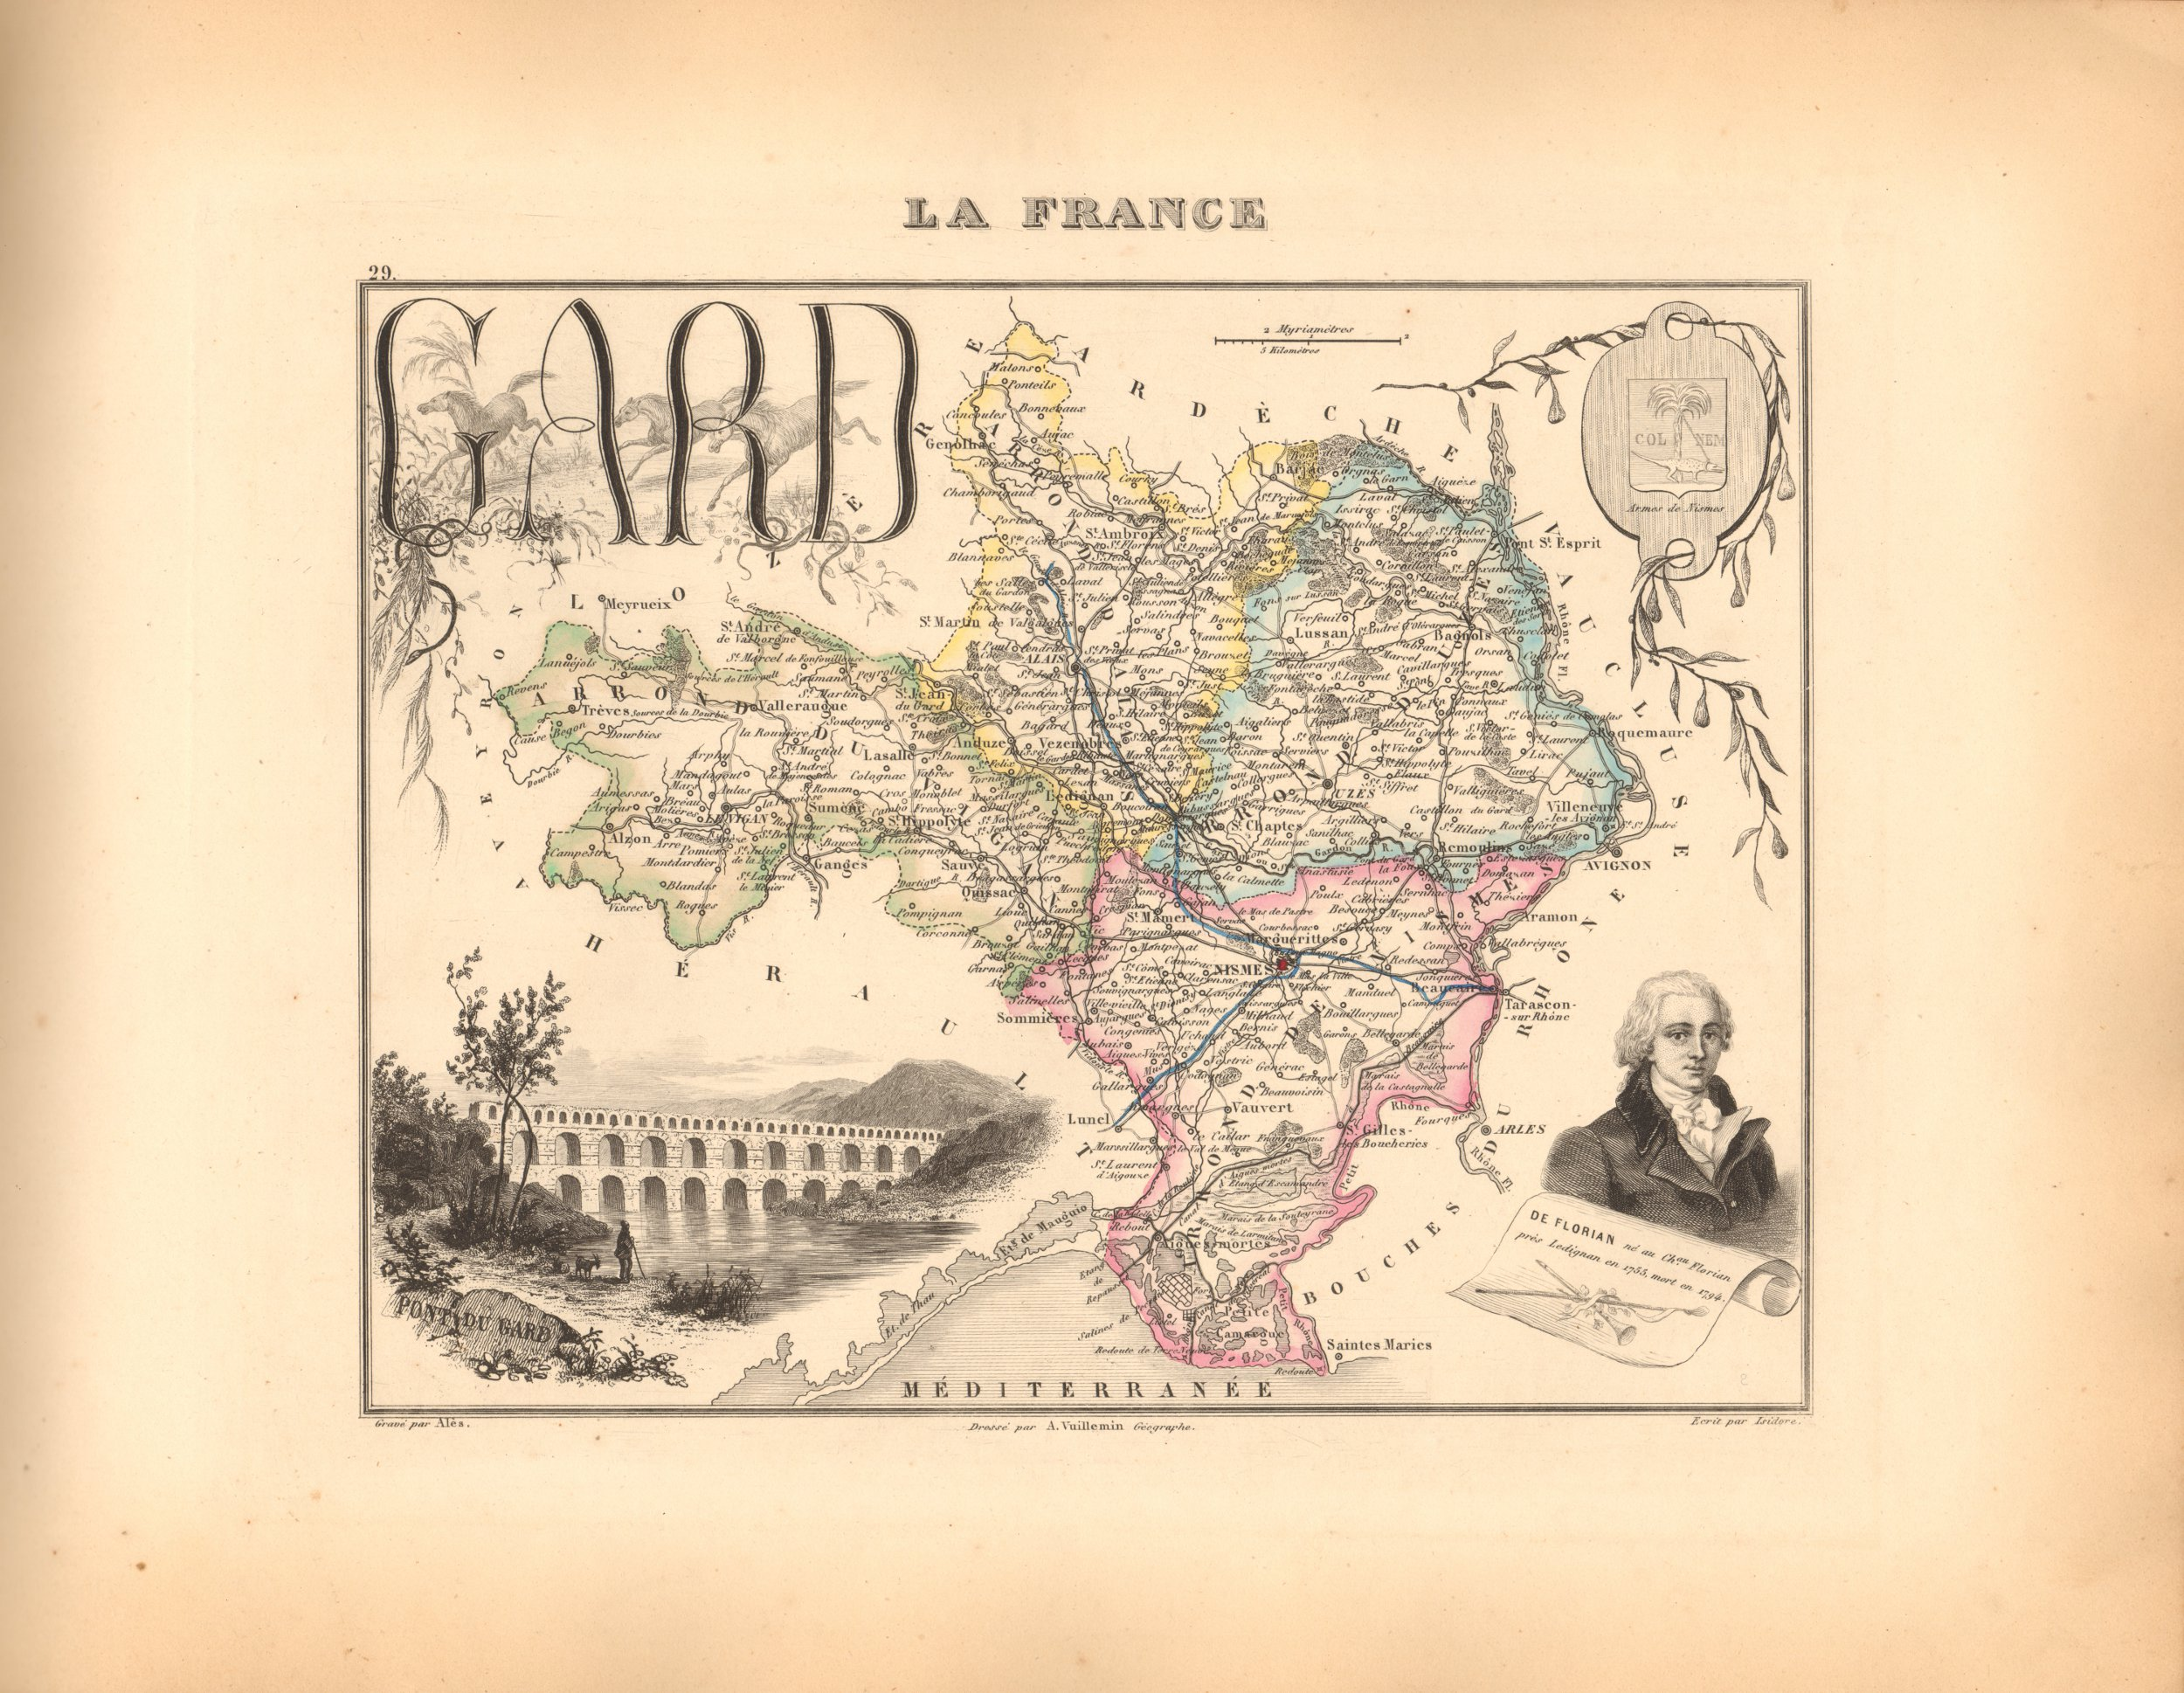 Gard - French Department Map